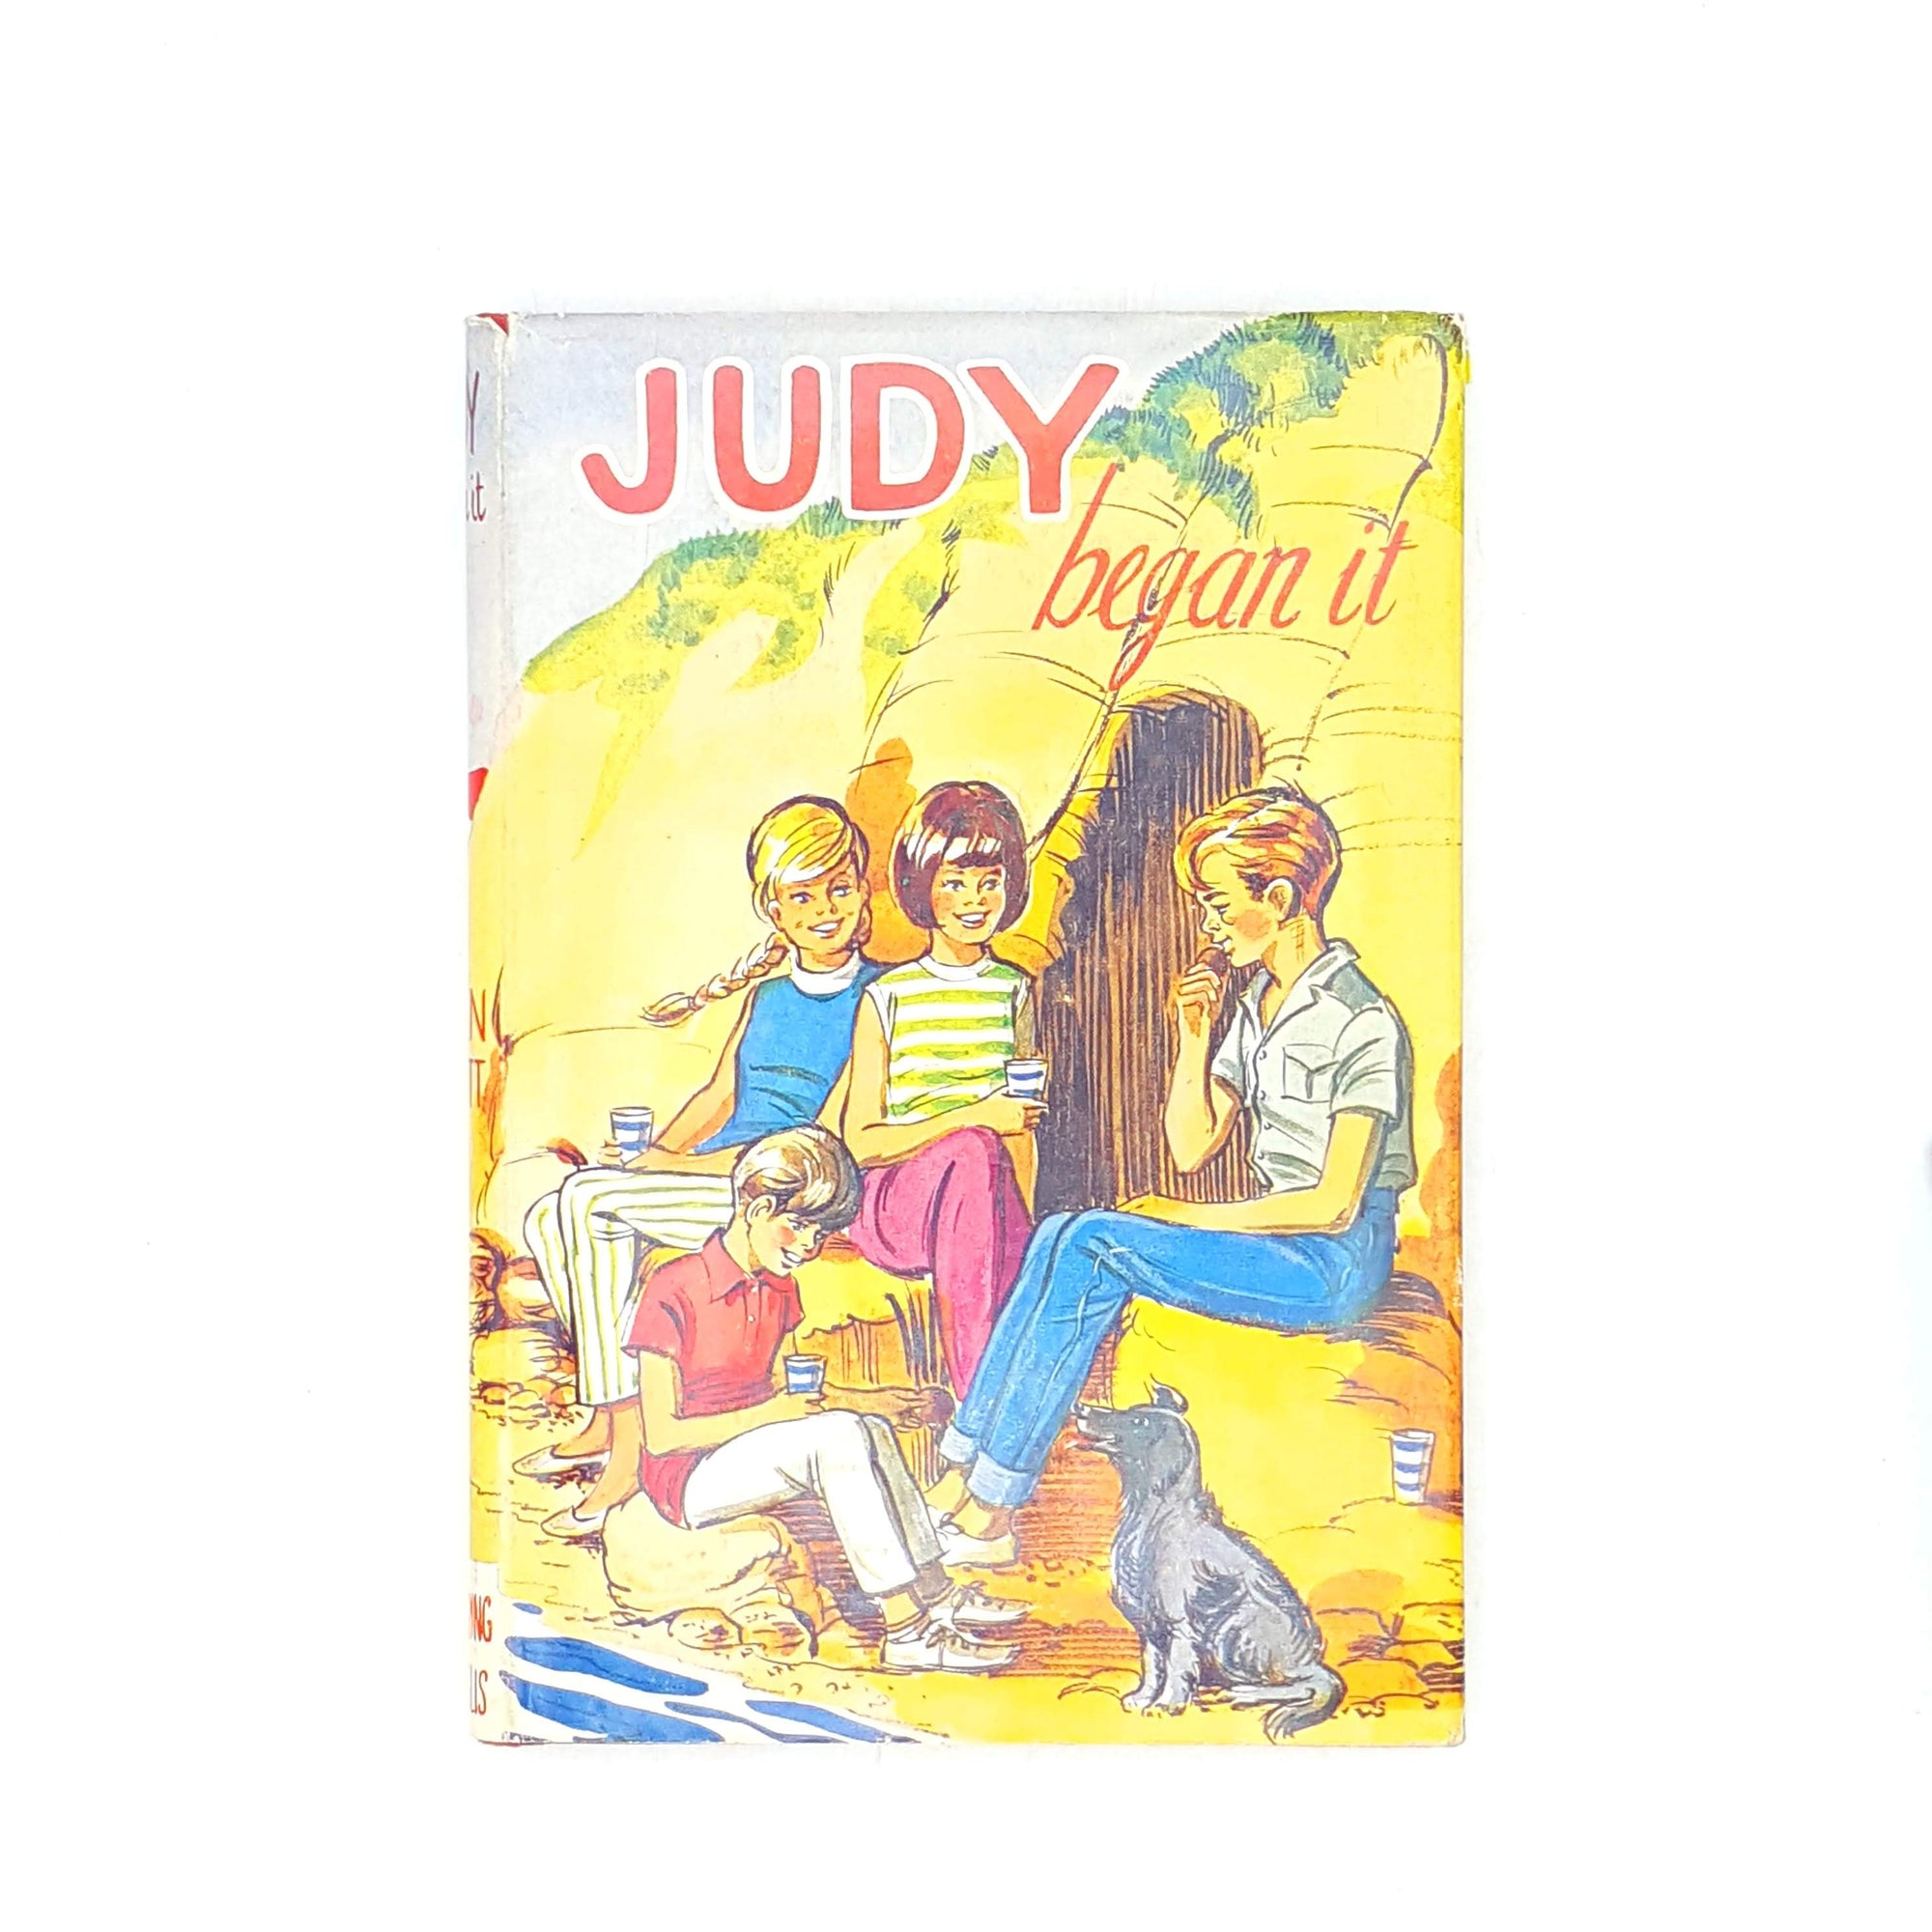 Judy Began It by Ellen Elliott 1967